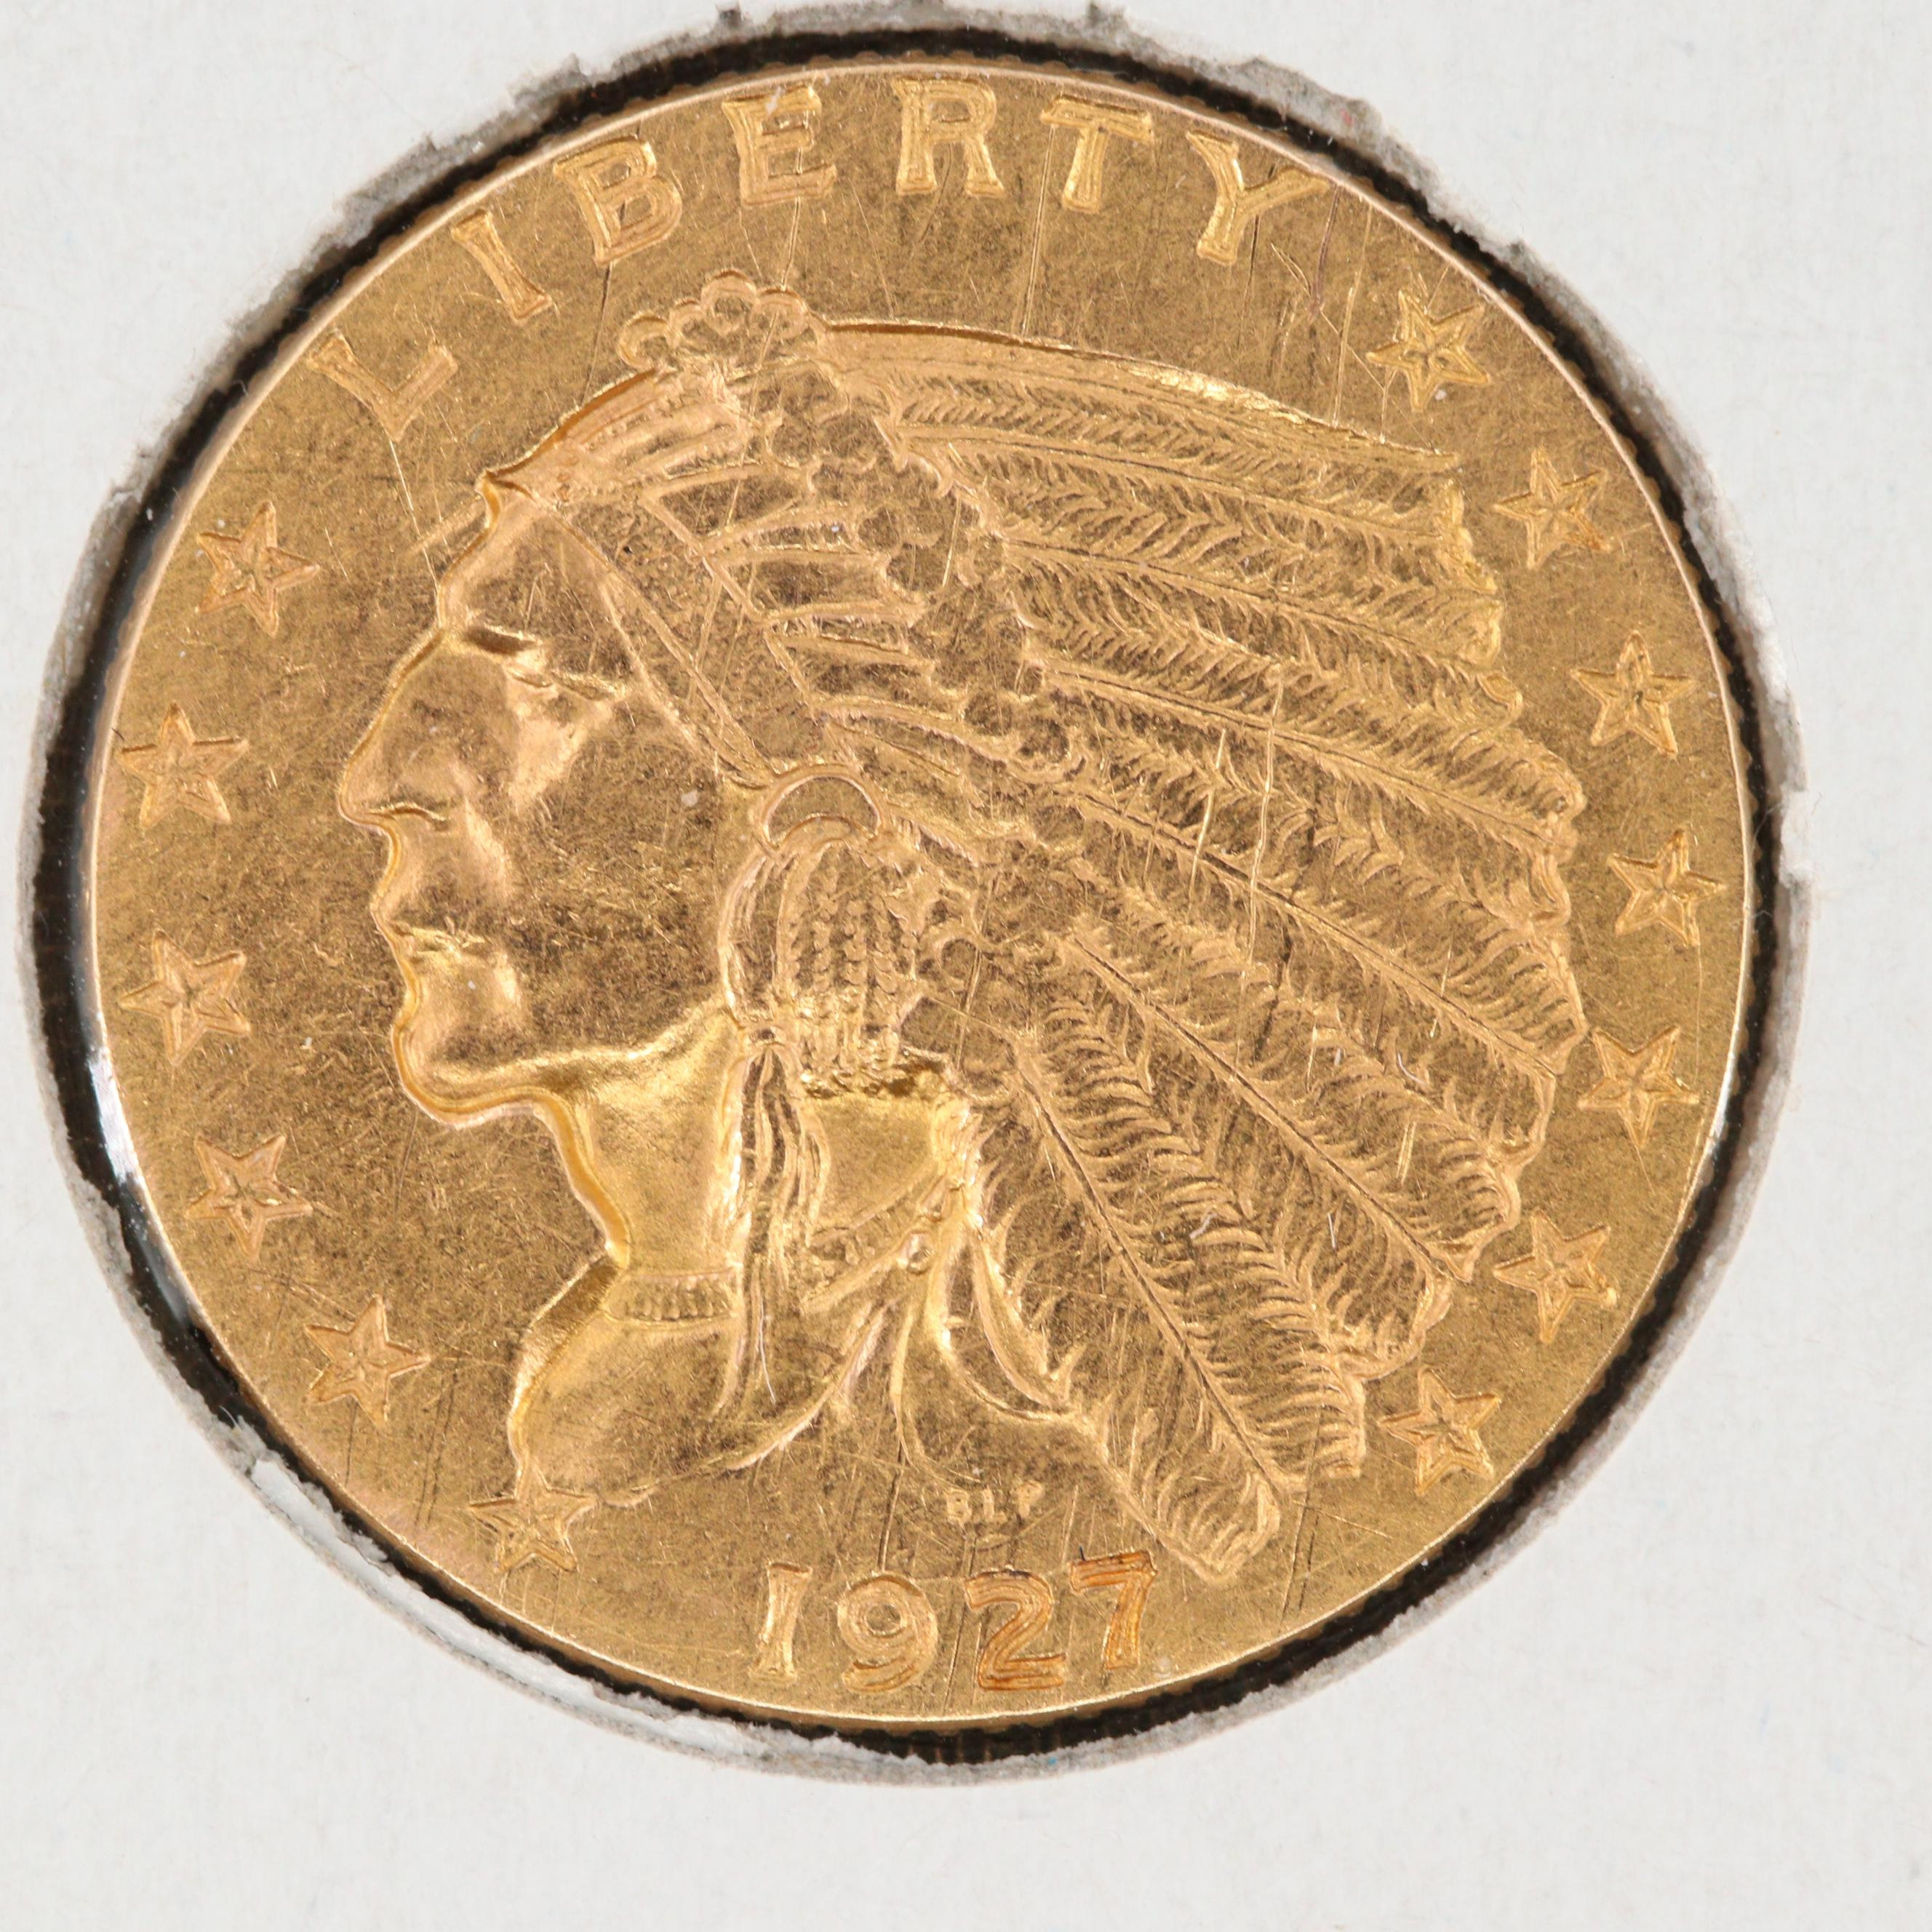 1927 Indian Head $2 1/2 Gold Coin